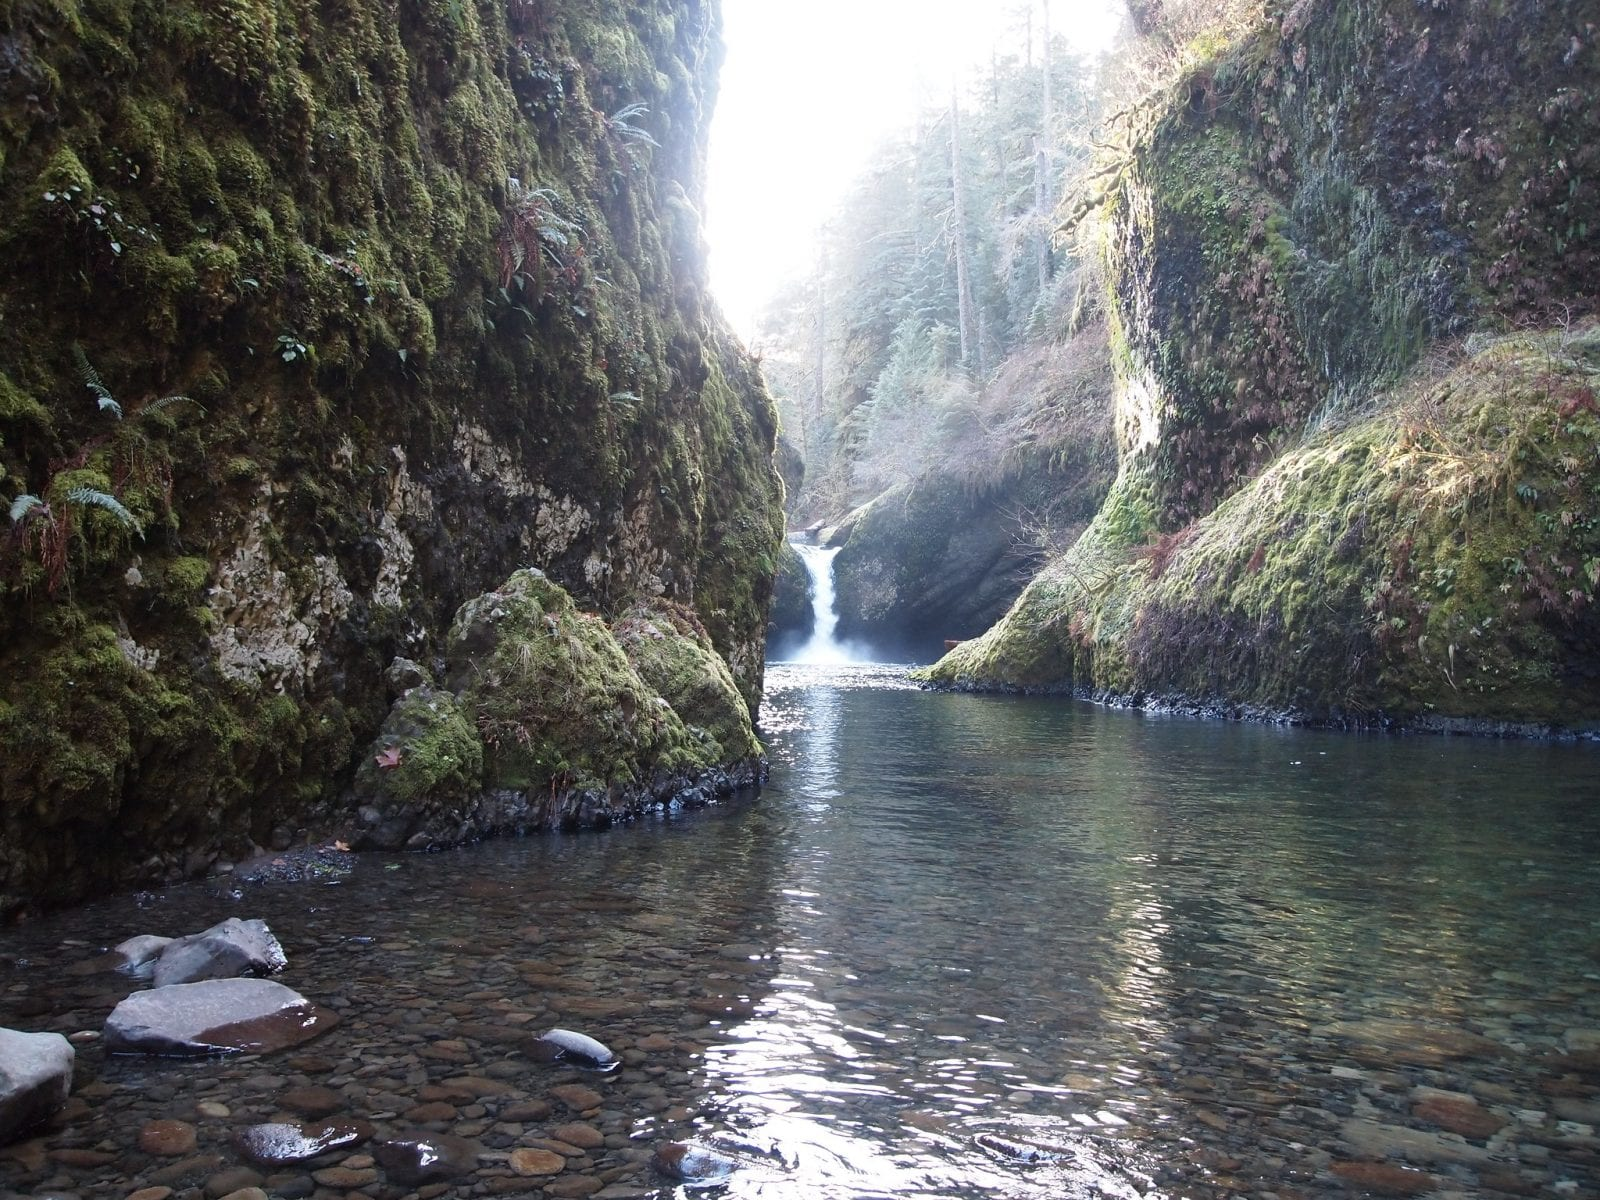 Eagle Creek in the Columbia River Gorge